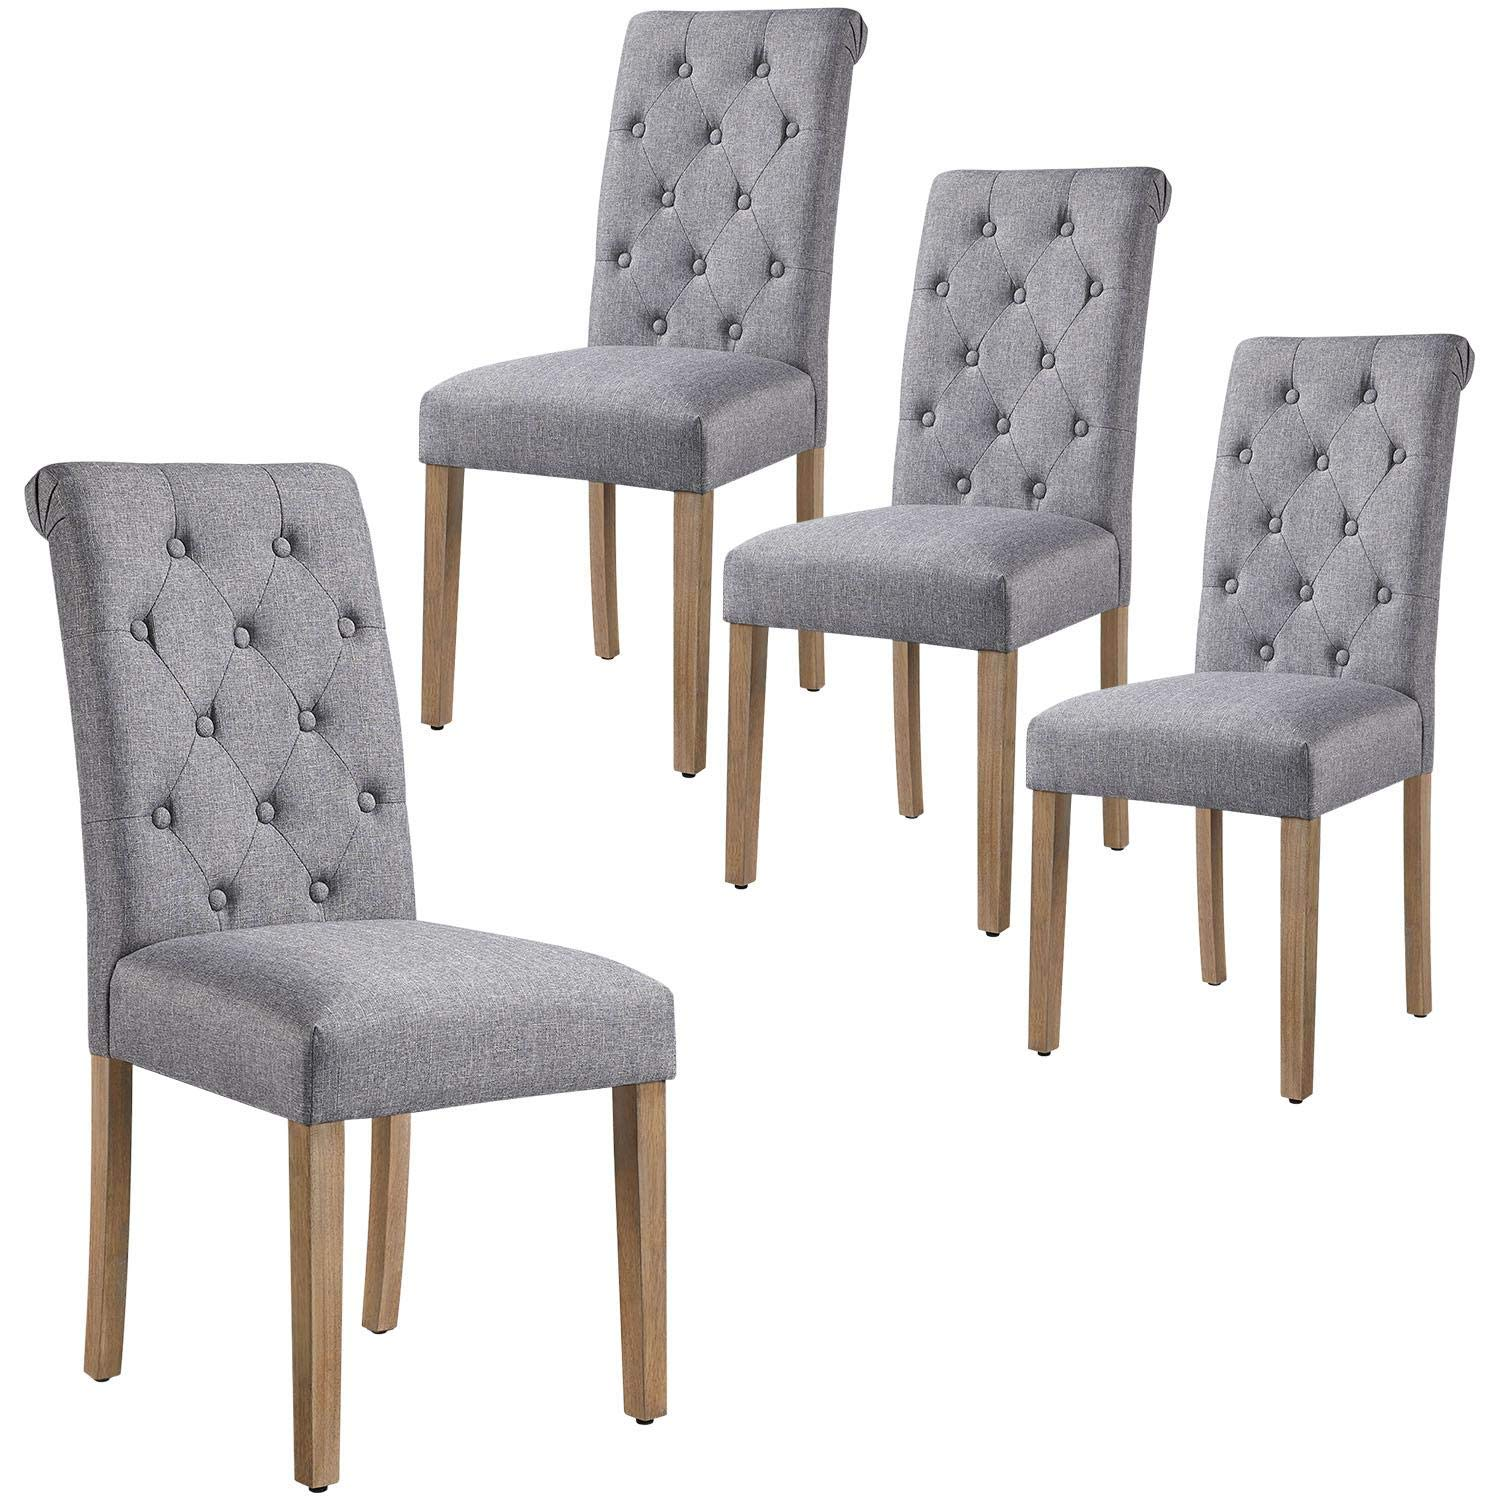 Yaheetech Dining Chairs Fabric Upholstered Dining Chair Classic High Back Padded Dining Chairs Button Tufted Parsons Buy Online In Hong Kong At Desertcart Hk Productid 217460473